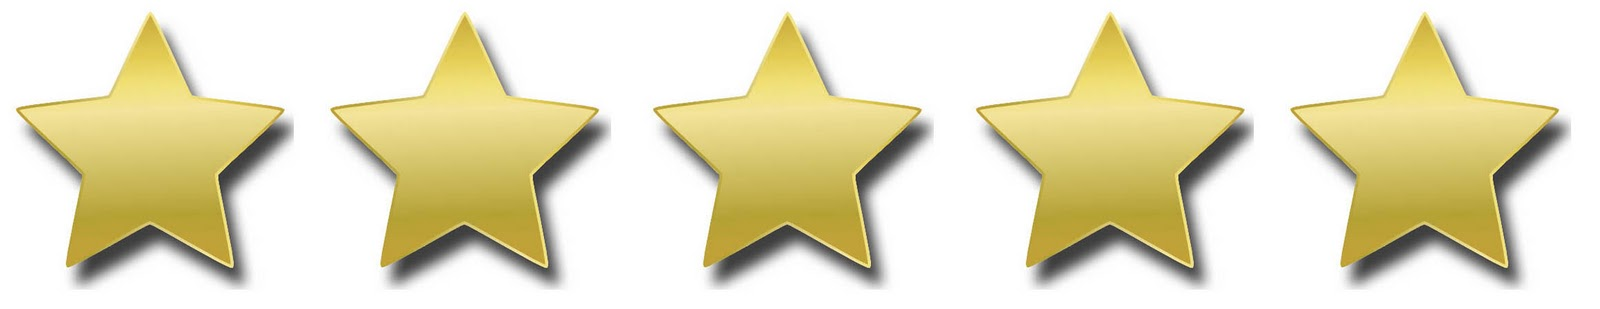 http://www.clipartkid.com/images/30/gold-5-star-rating-page-1-clipart-best-clipart-best-XMsZhM-clipart.jpeg